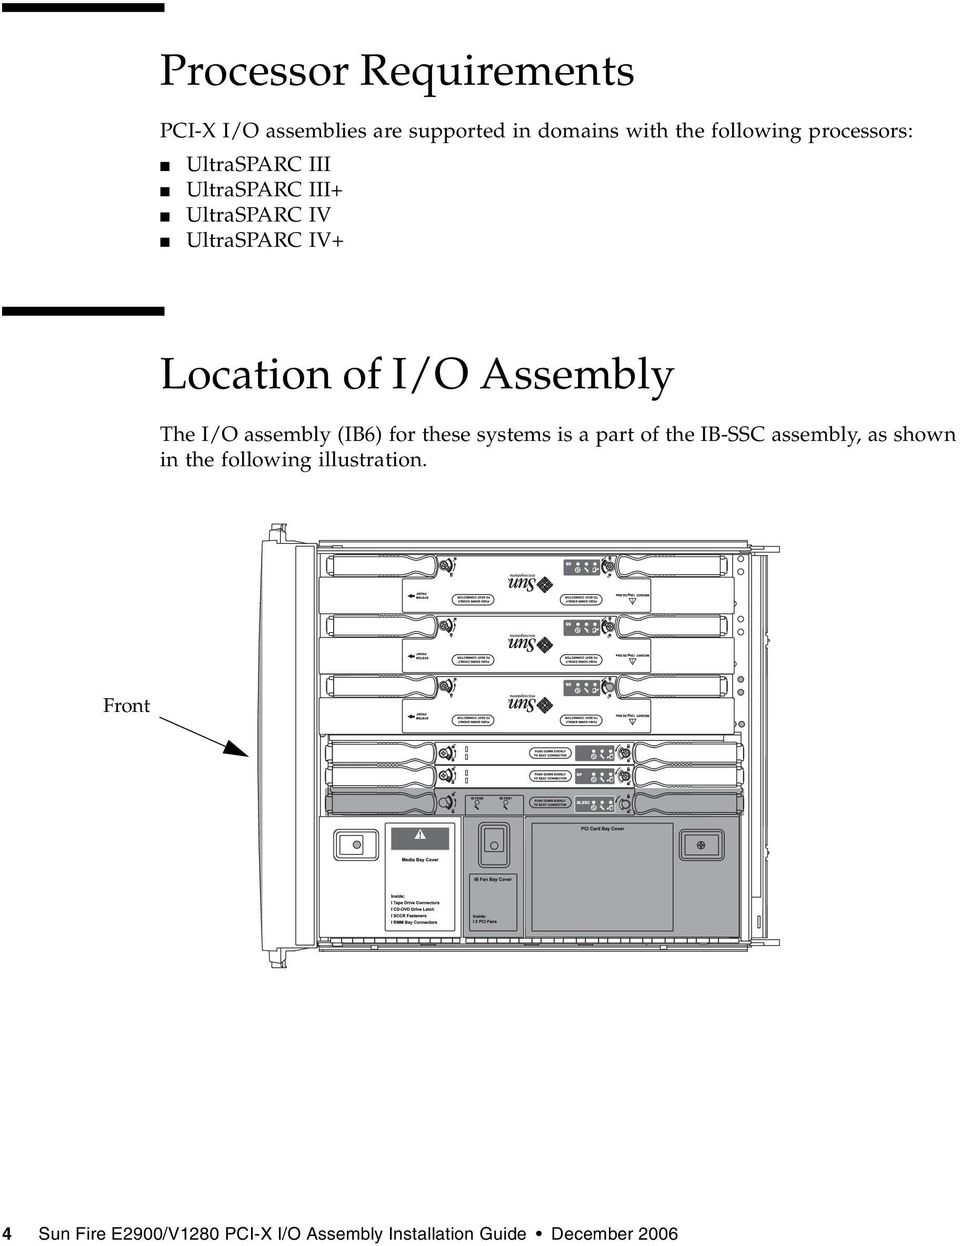 Assembly The I/O assembly (IB6) for these systems is a part of the IB-SSC assembly, as shown